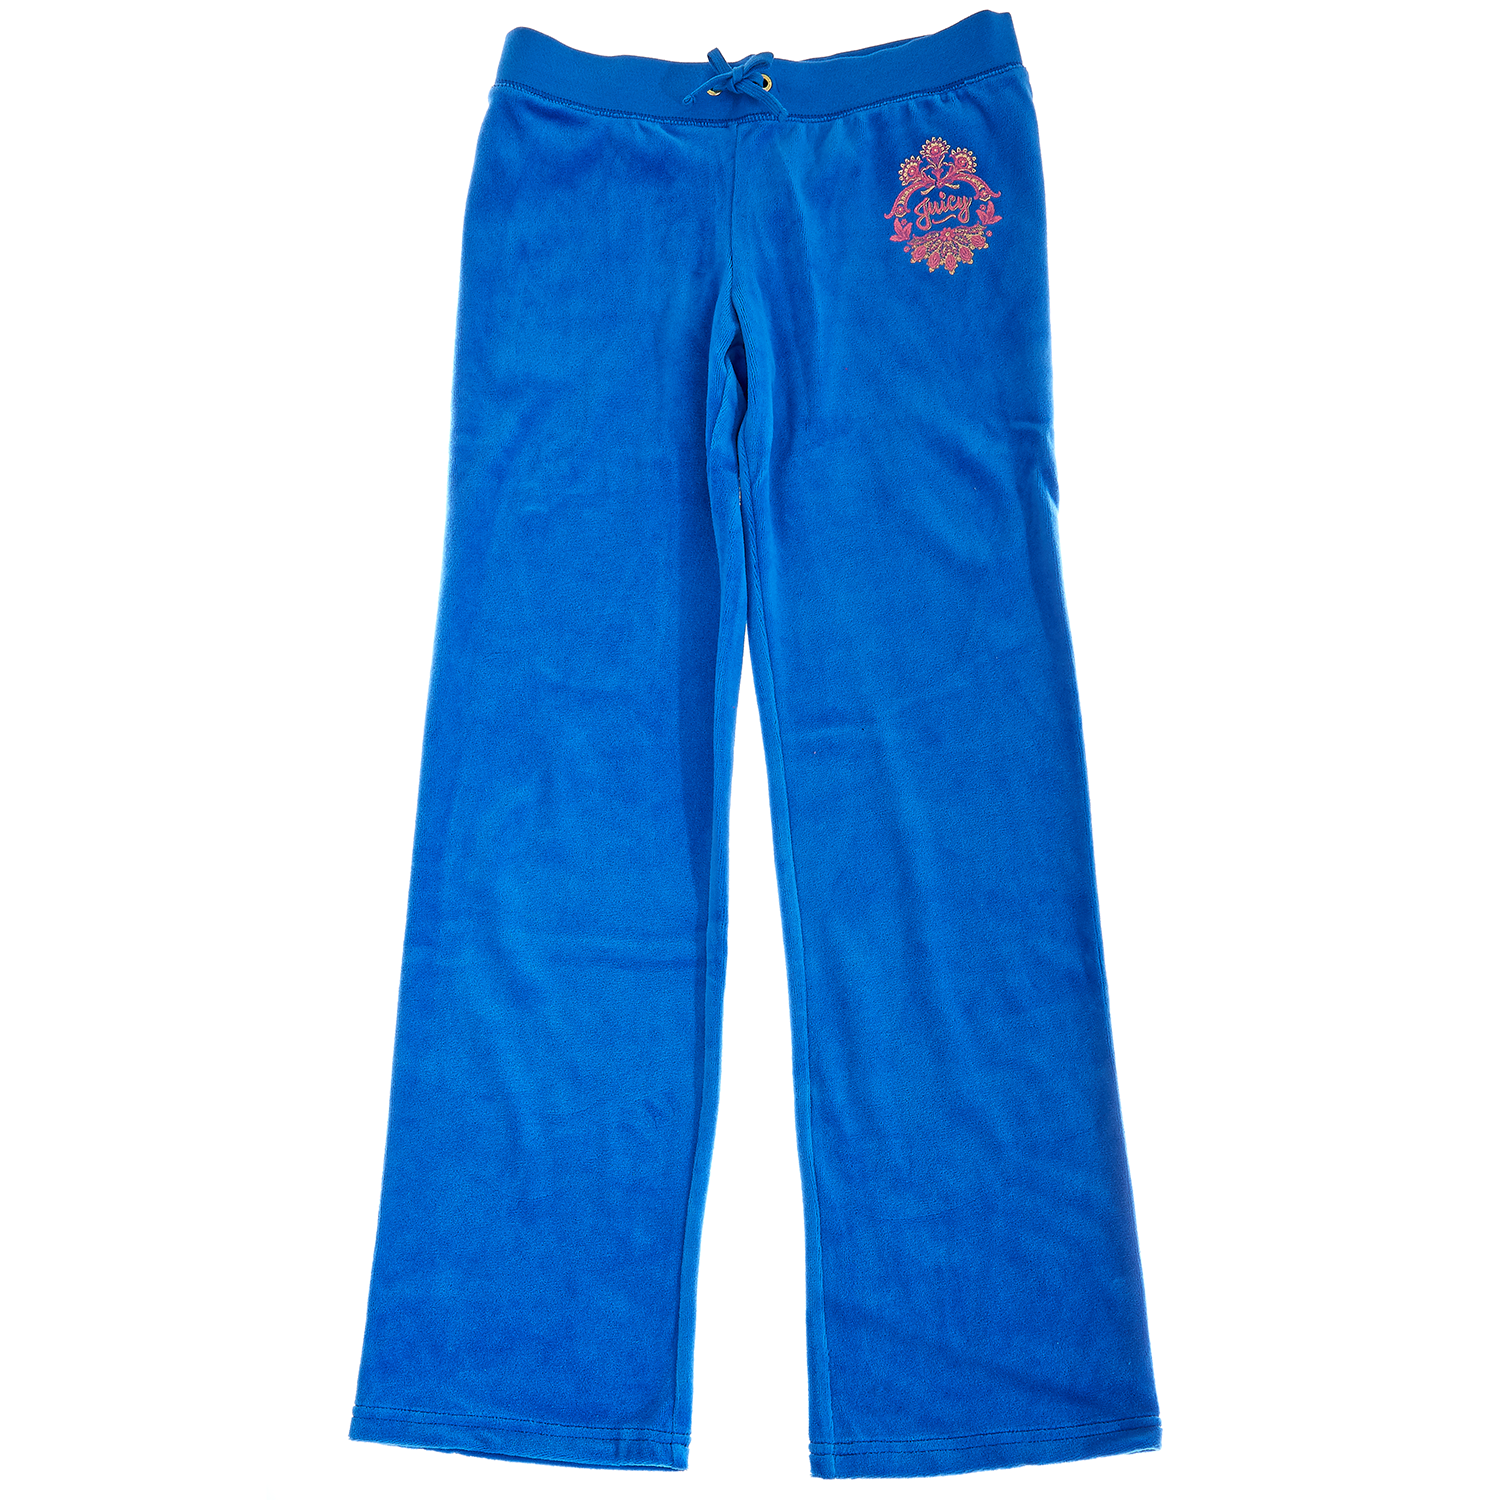 JUICY COUTURE KIDS – Παιδικό παντελόνι JUICY COUTURE μπλε. Κατάστημα  Factory  Outlet d551f465e0d